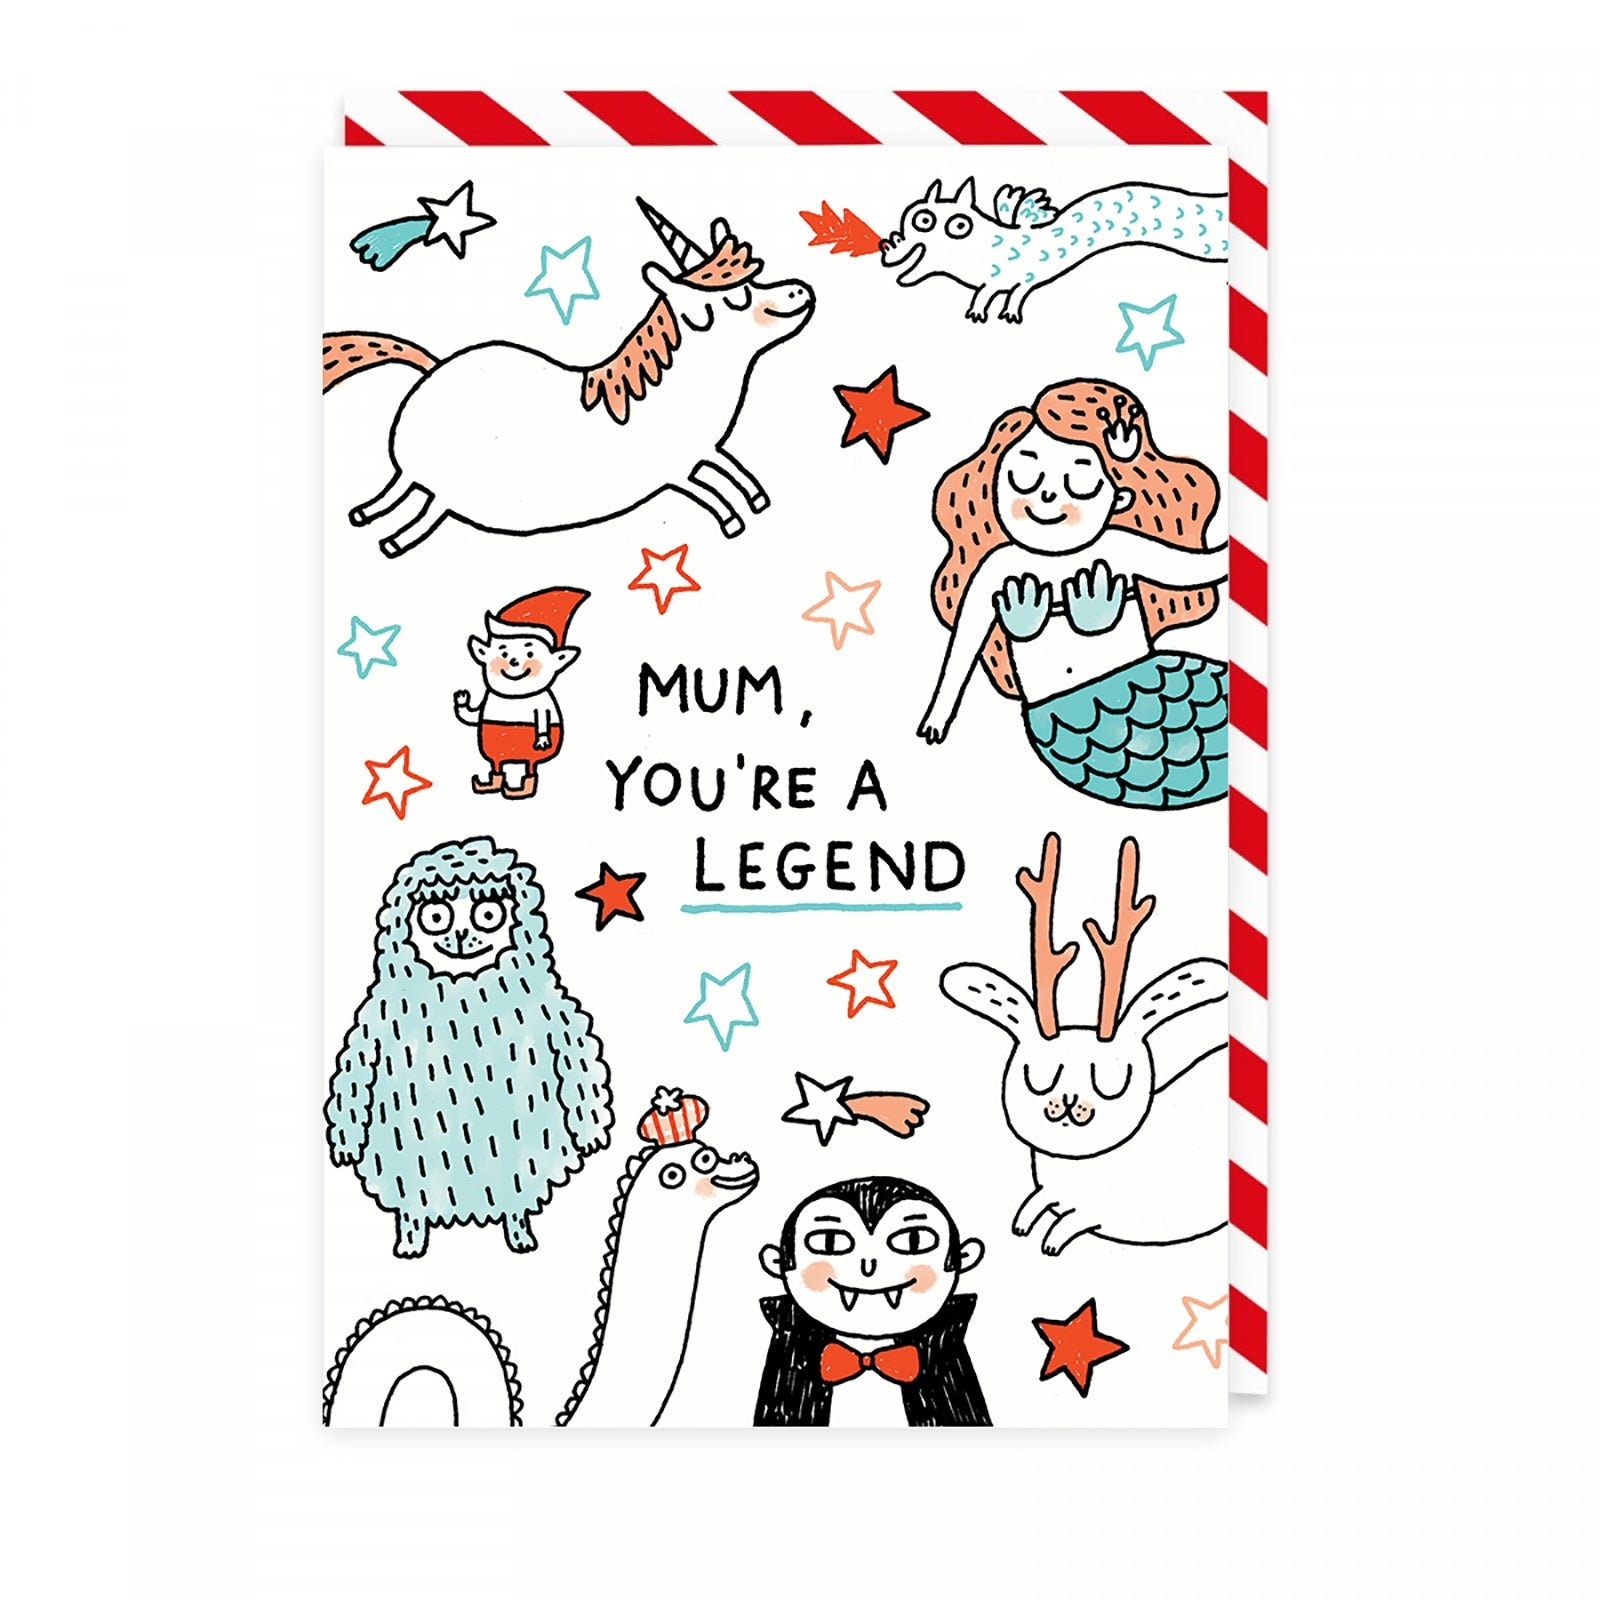 You're A Legend Mum Greeting Card